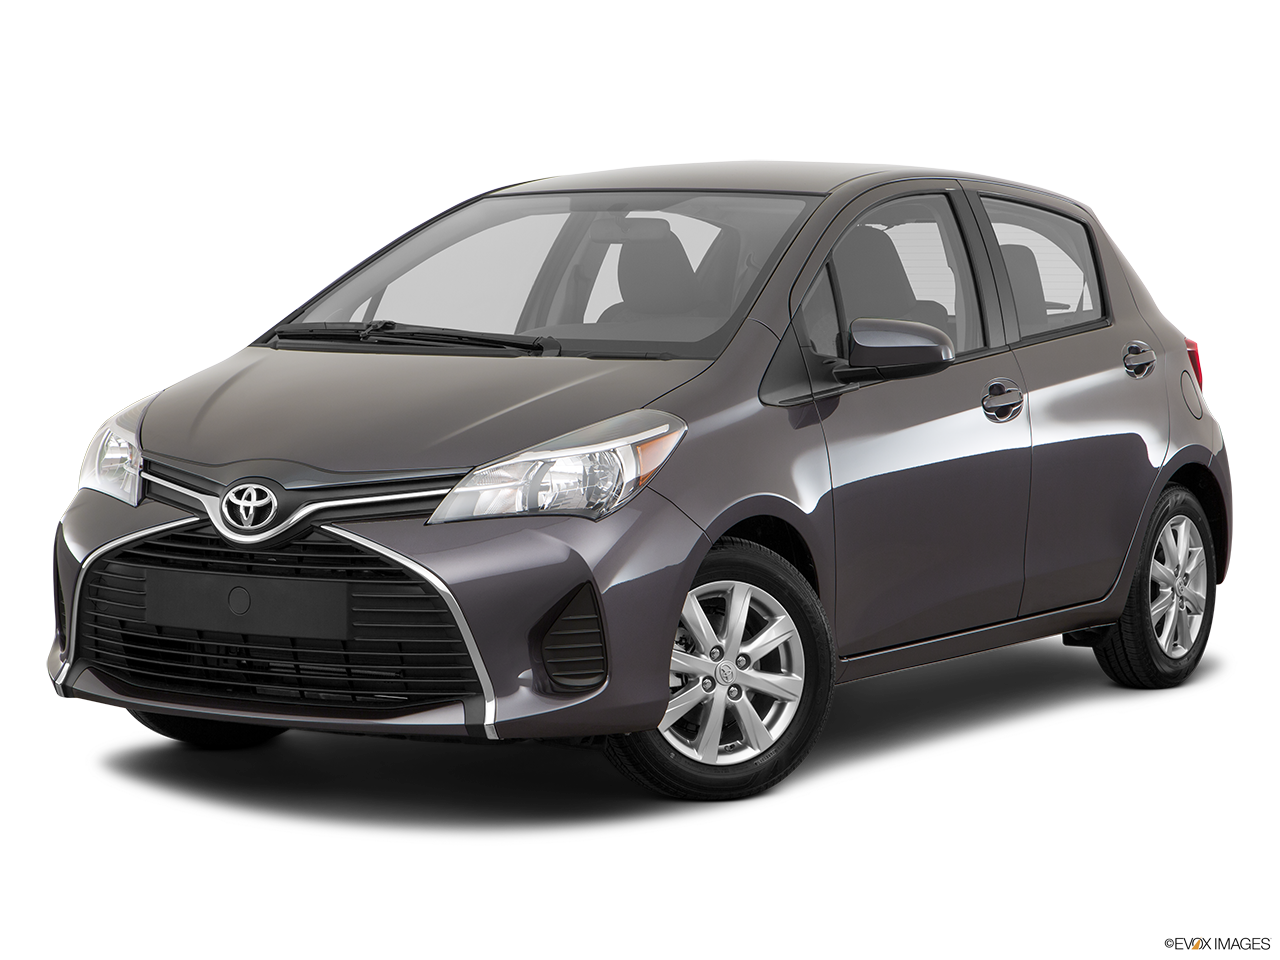 Test Drive A 2016 Toyota Yaris at Moss Bros Toyota of Moreno Valley in Moreno Valley